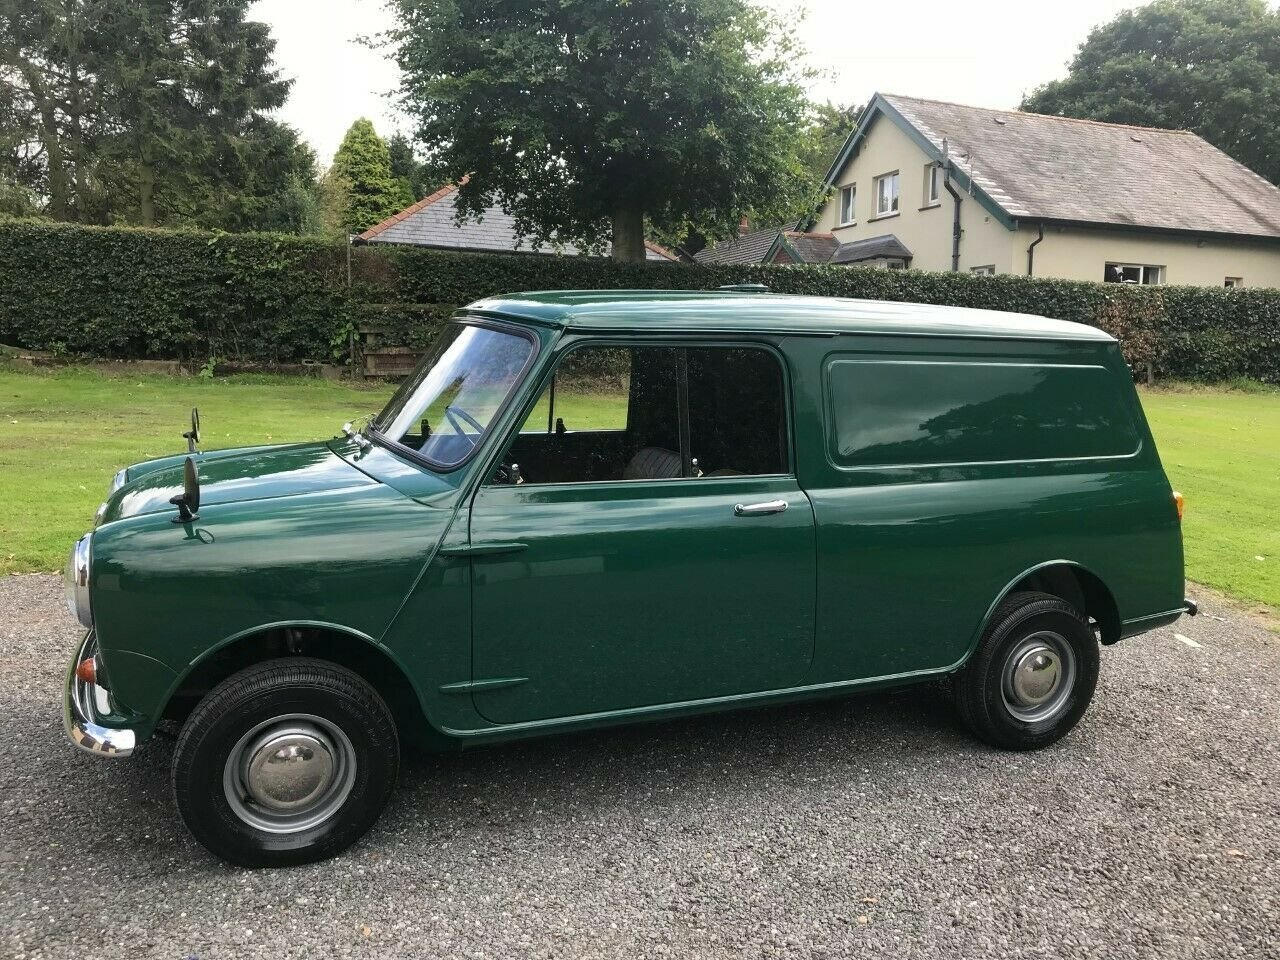 1969 MORRIS MINI VAN GREEN 17K STUNNING CONCOURS WINNER!!! For Sale (picture 1 of 6)